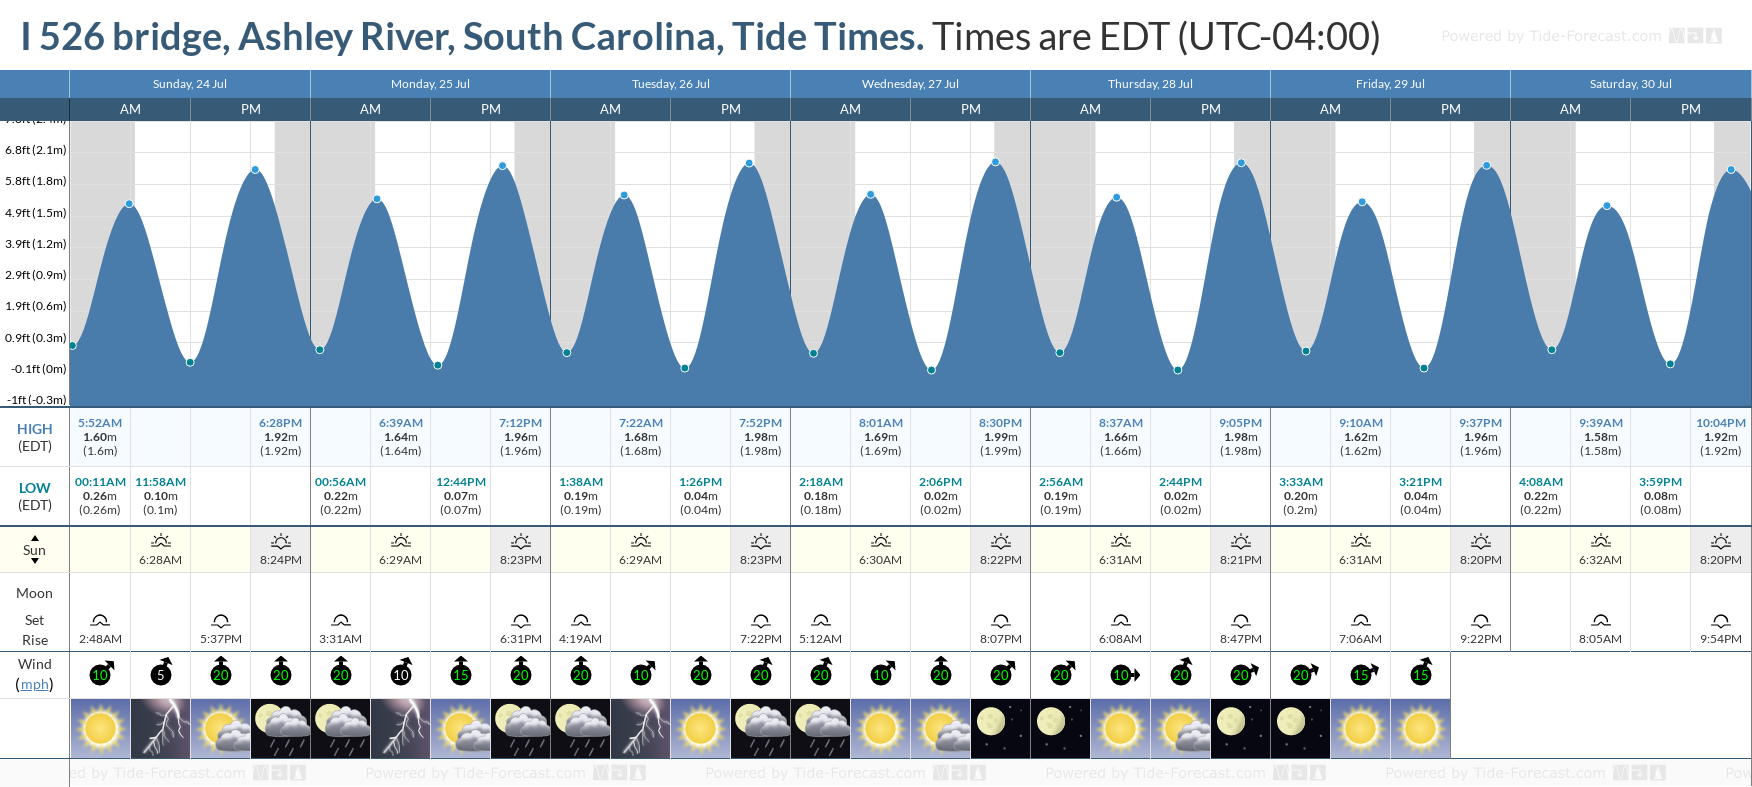 I 526 bridge, Ashley River, South Carolina Tide Chart including high and low tide tide times for the next 7 days